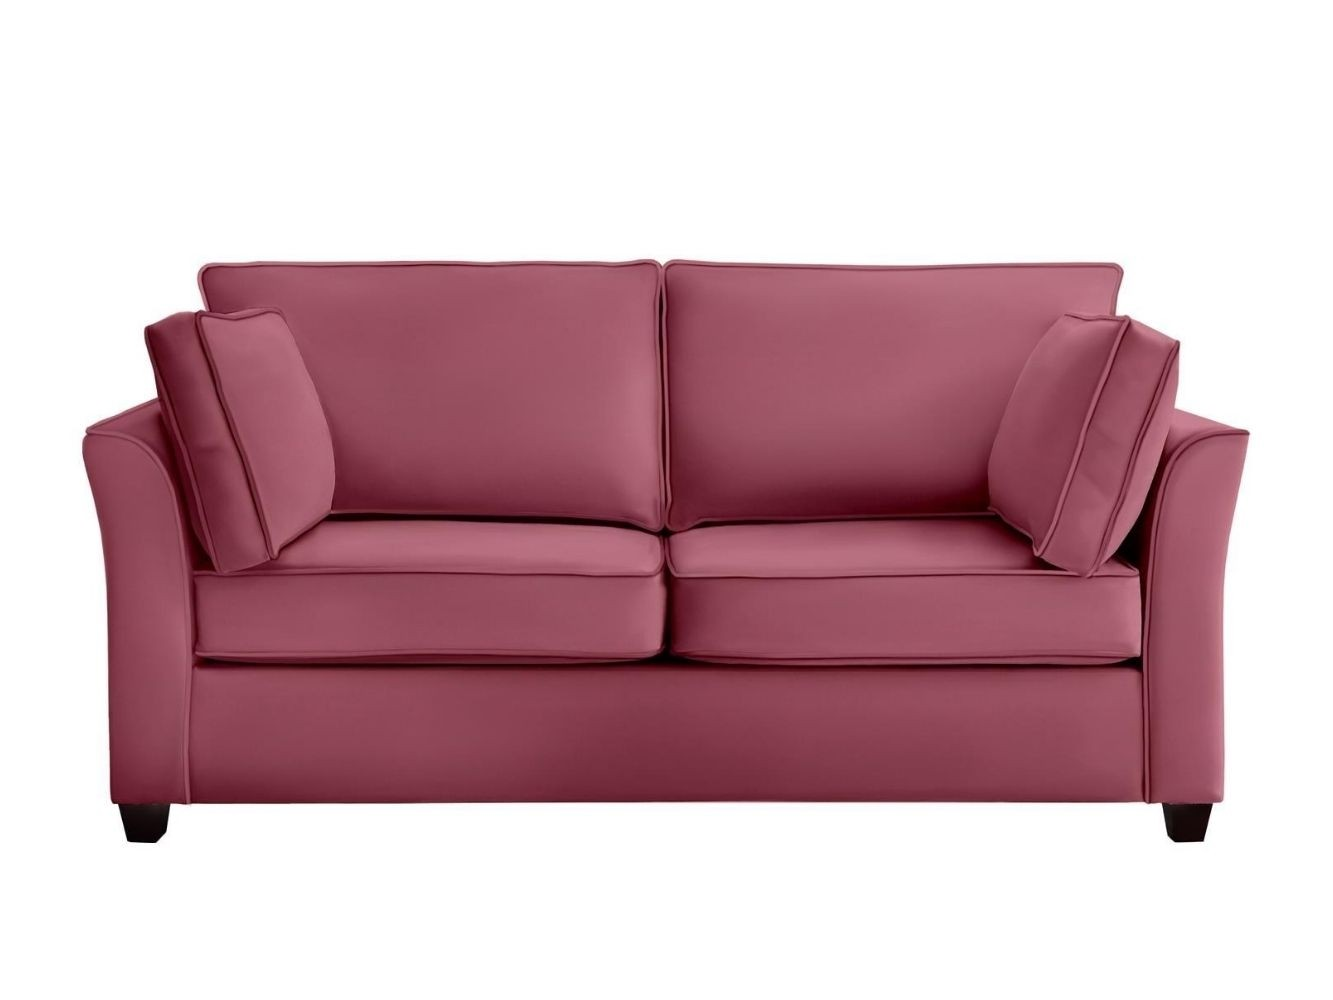 This is how I look in Stain Resistant Deep Velvet Fuchsia with reflex foam seat cushions